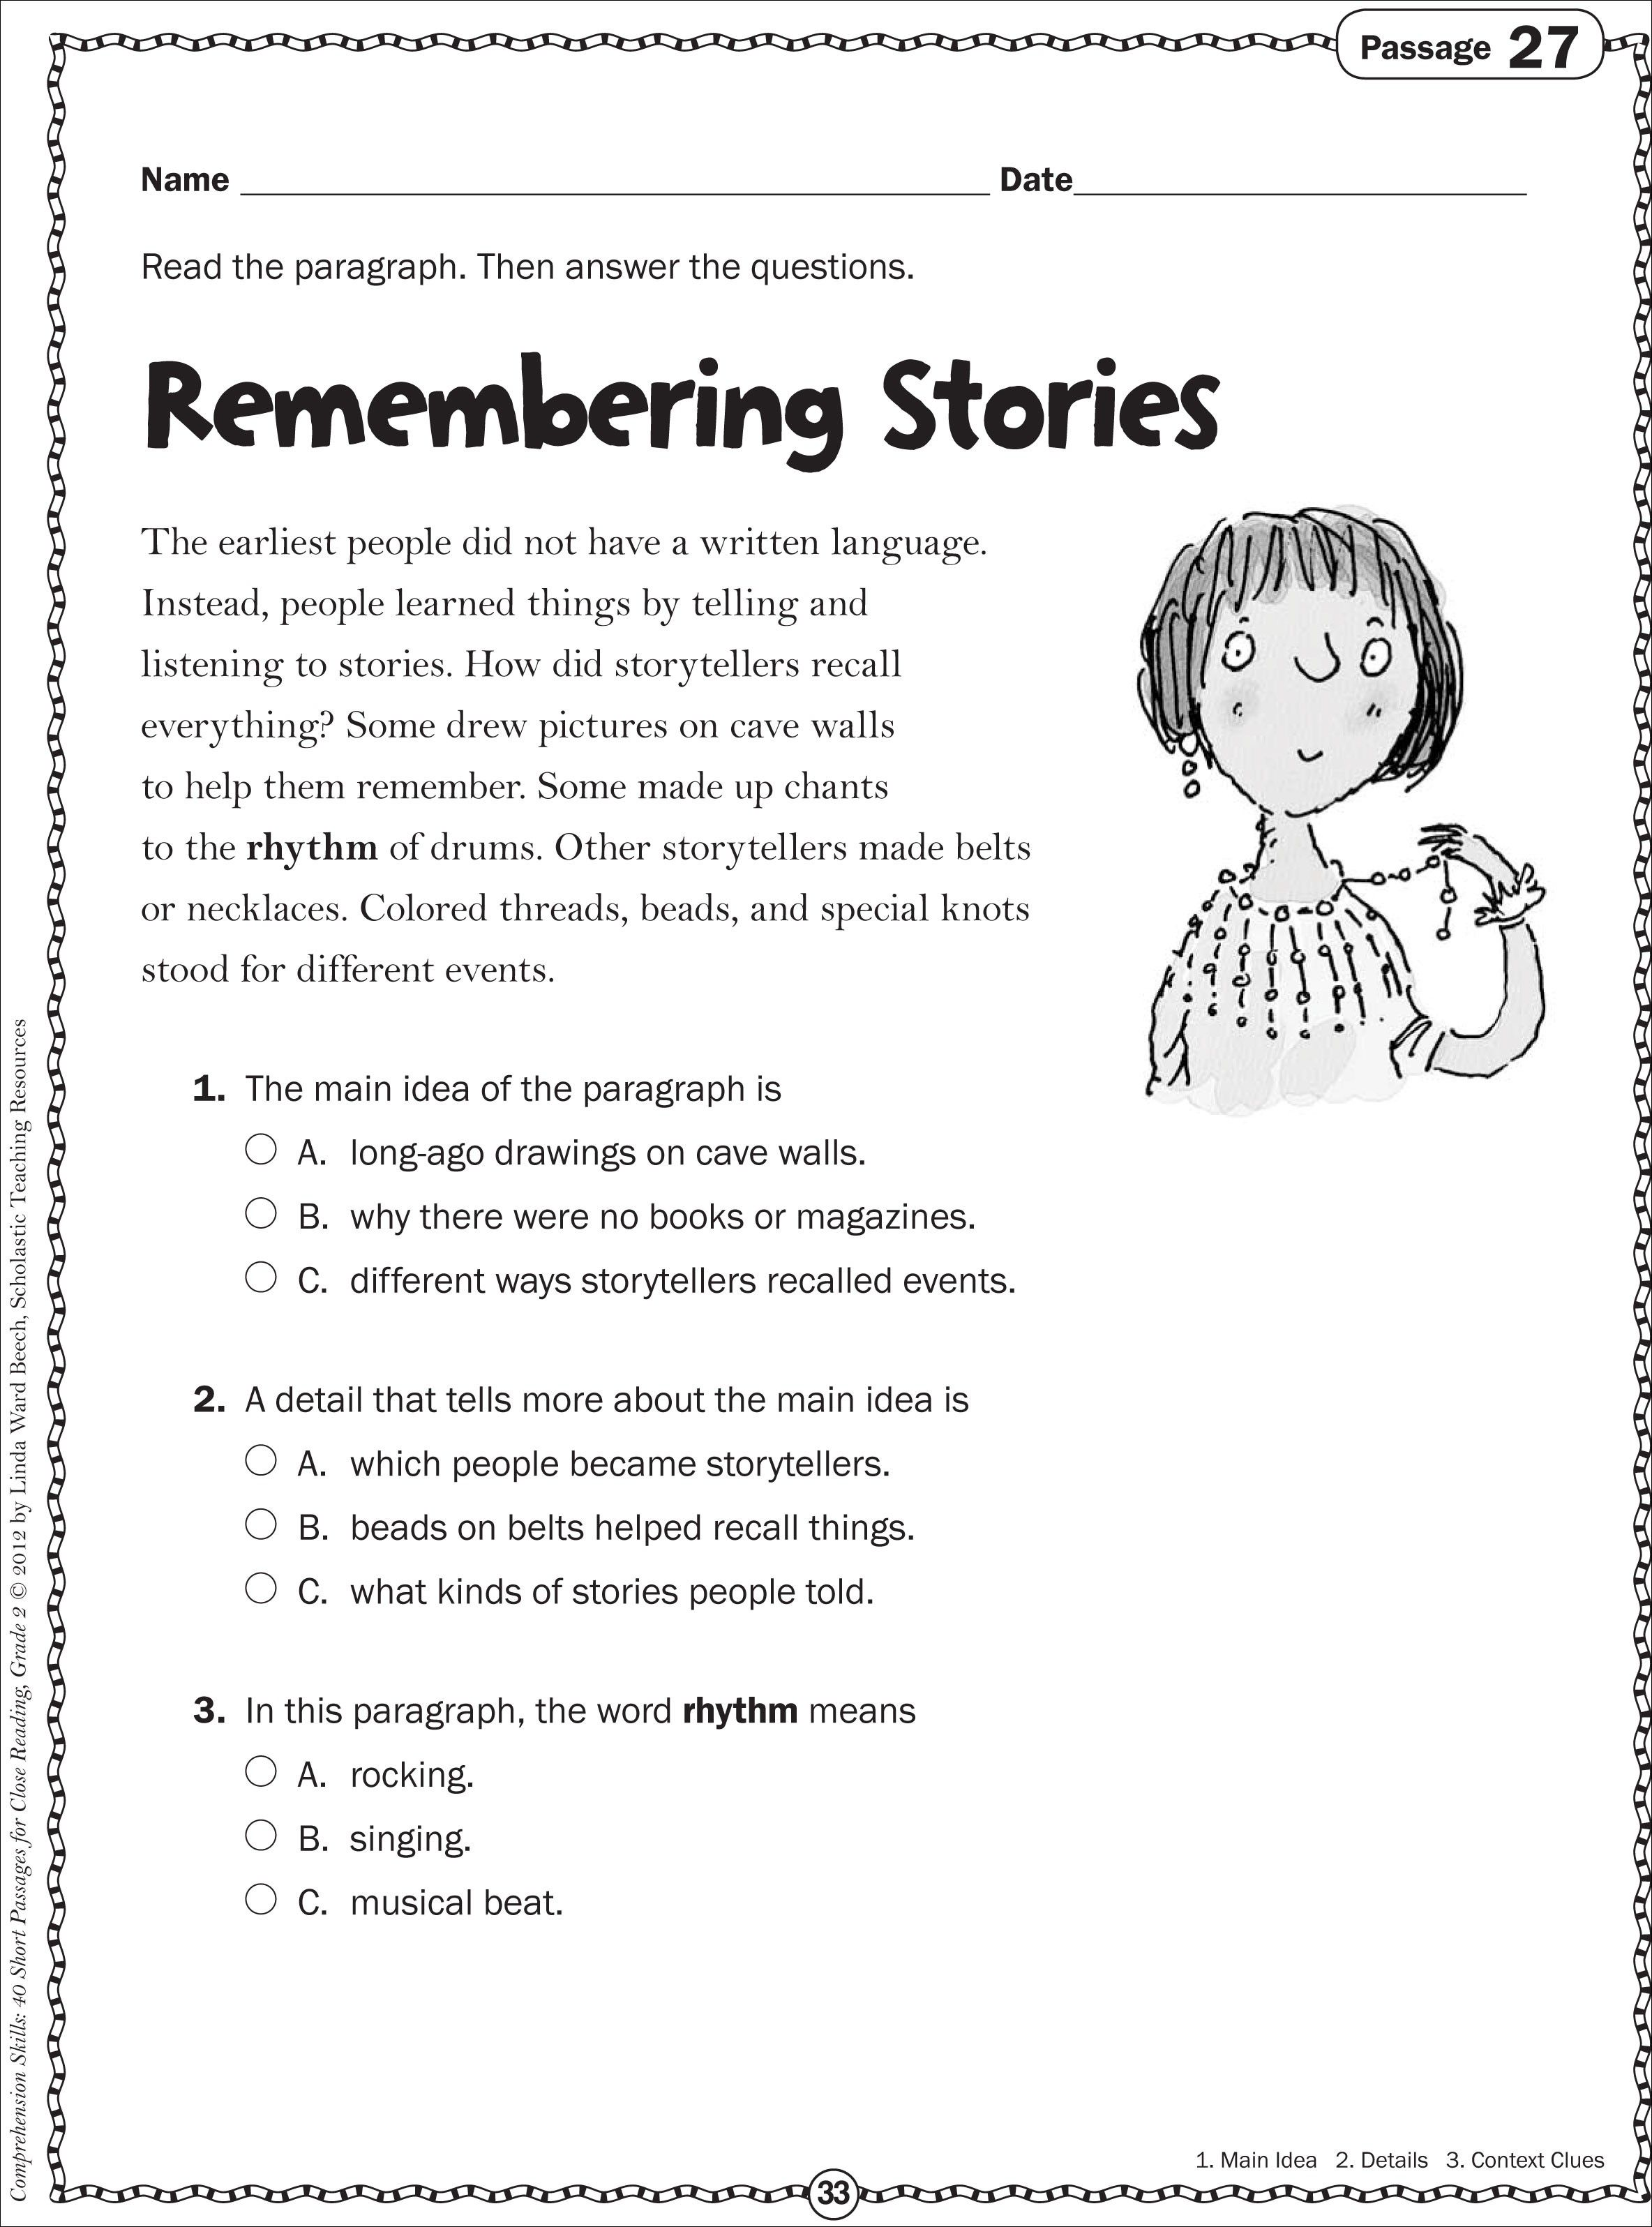 worksheet Reading Comprehension Worksheet 2nd Grade grade 2 reading passages memarchoapraga school pinterest memarchoapraga